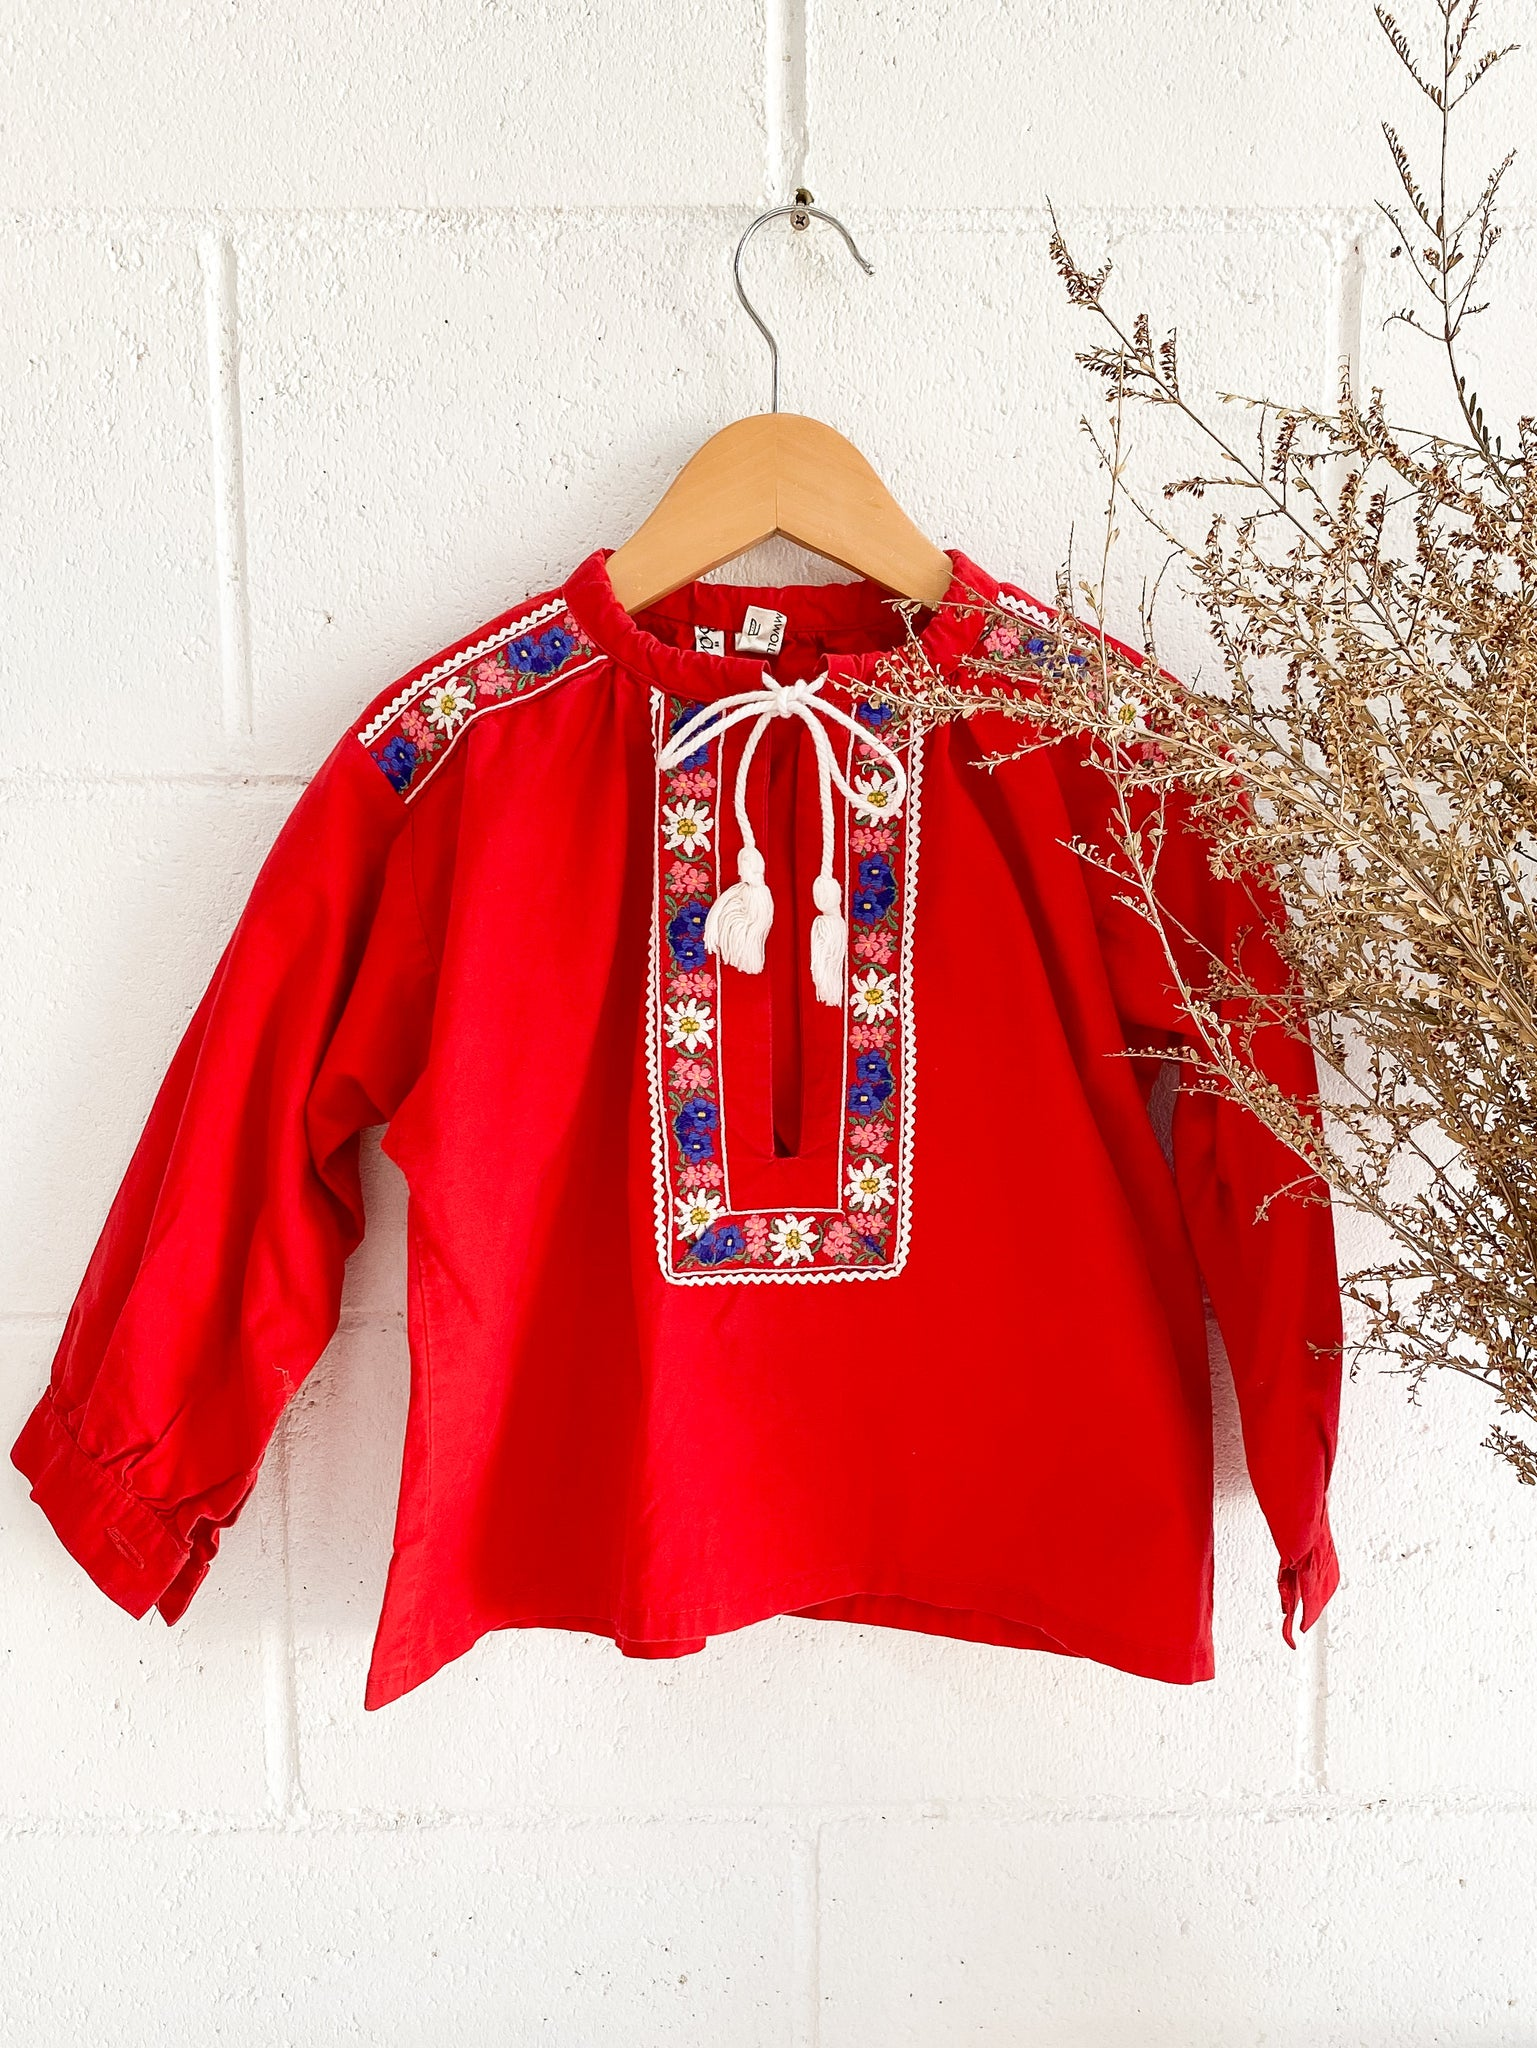 Vintage 1970's Red Cotton Folk Blouse